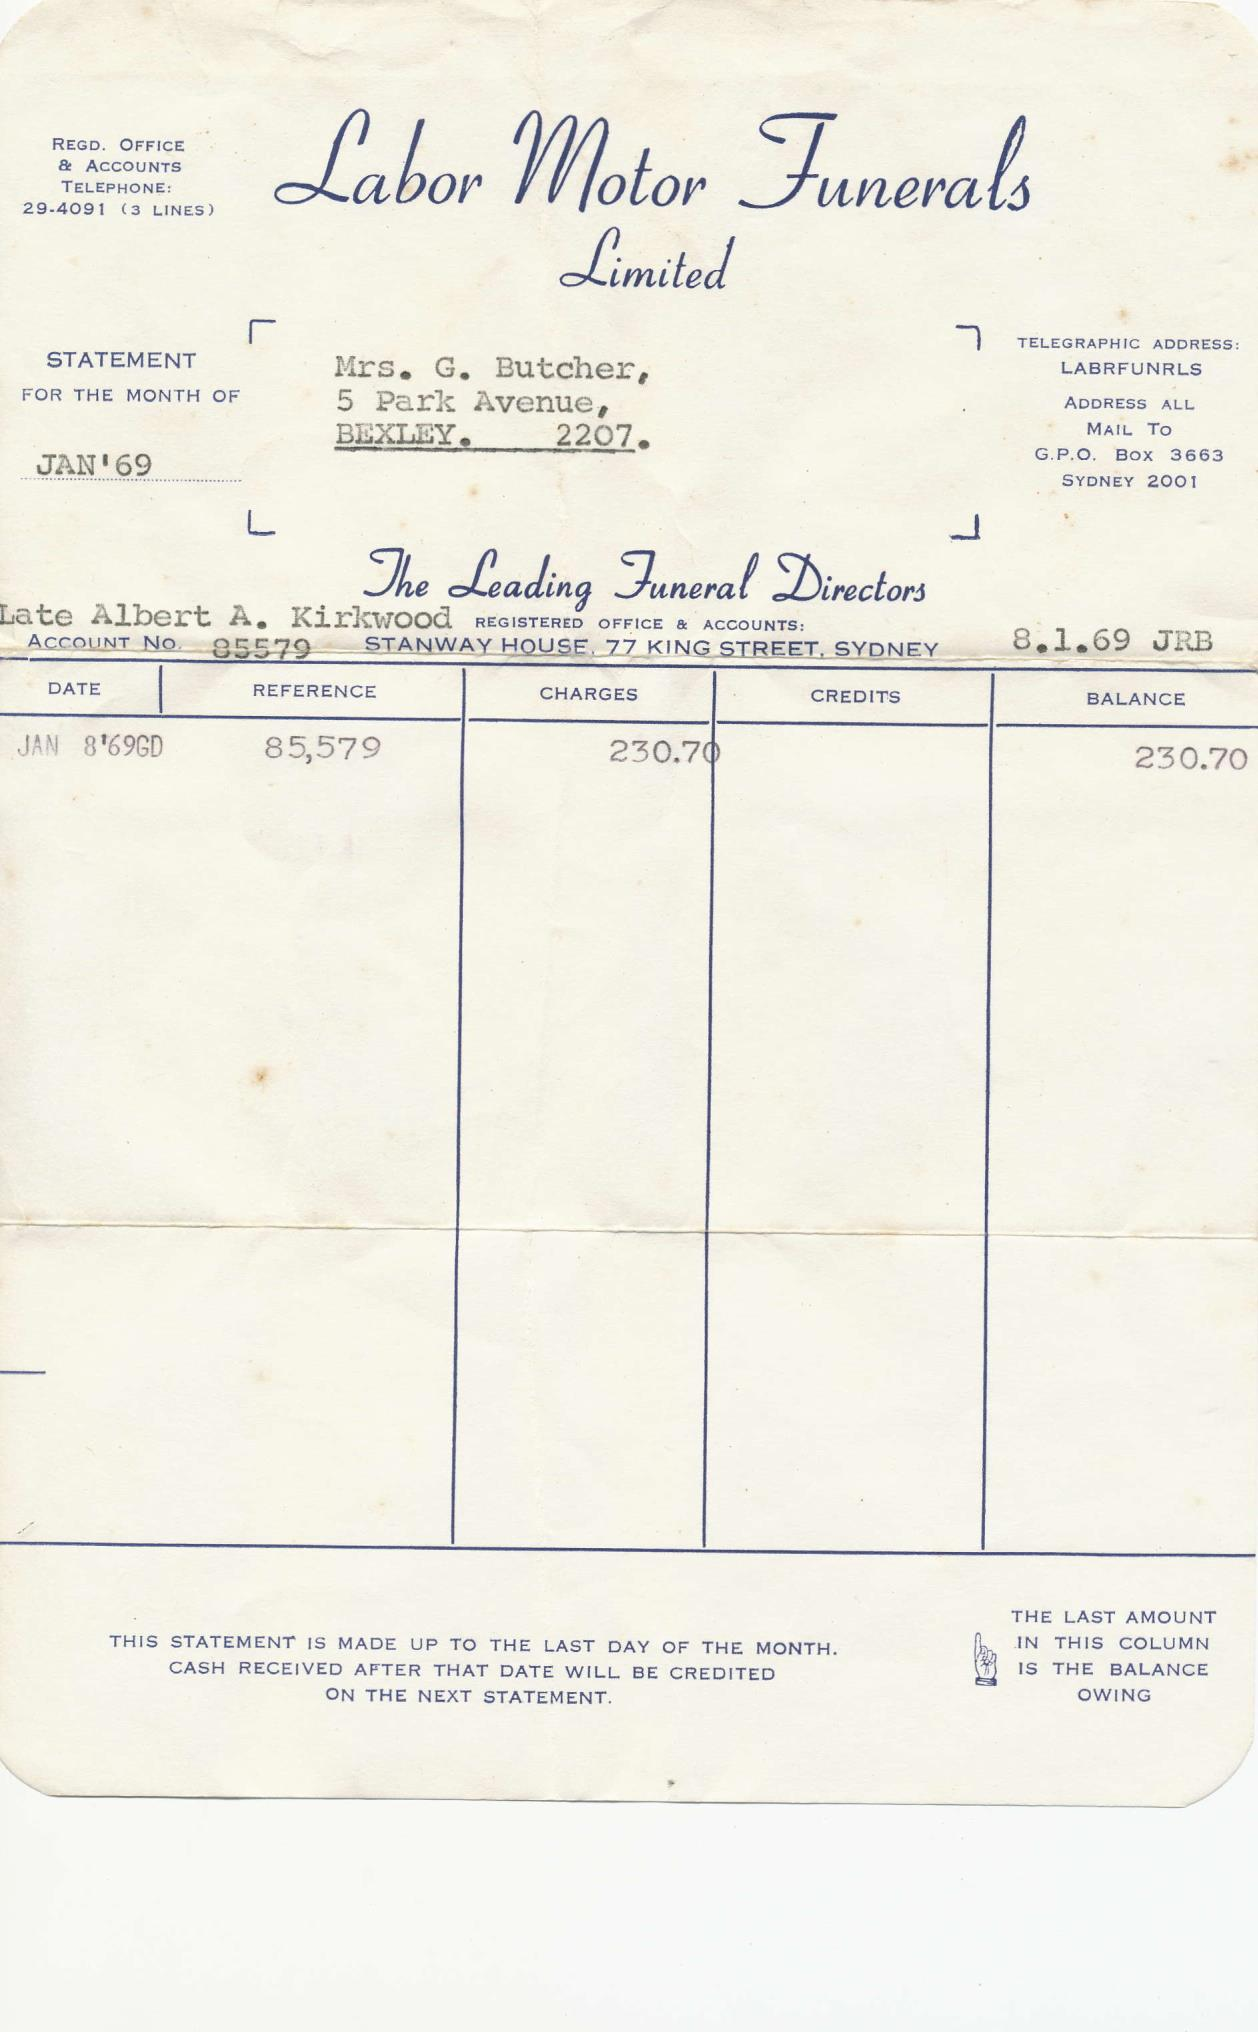 Funeral Arrangement, Invoice, Statement and receipt for Albert Alexander Kirkwood